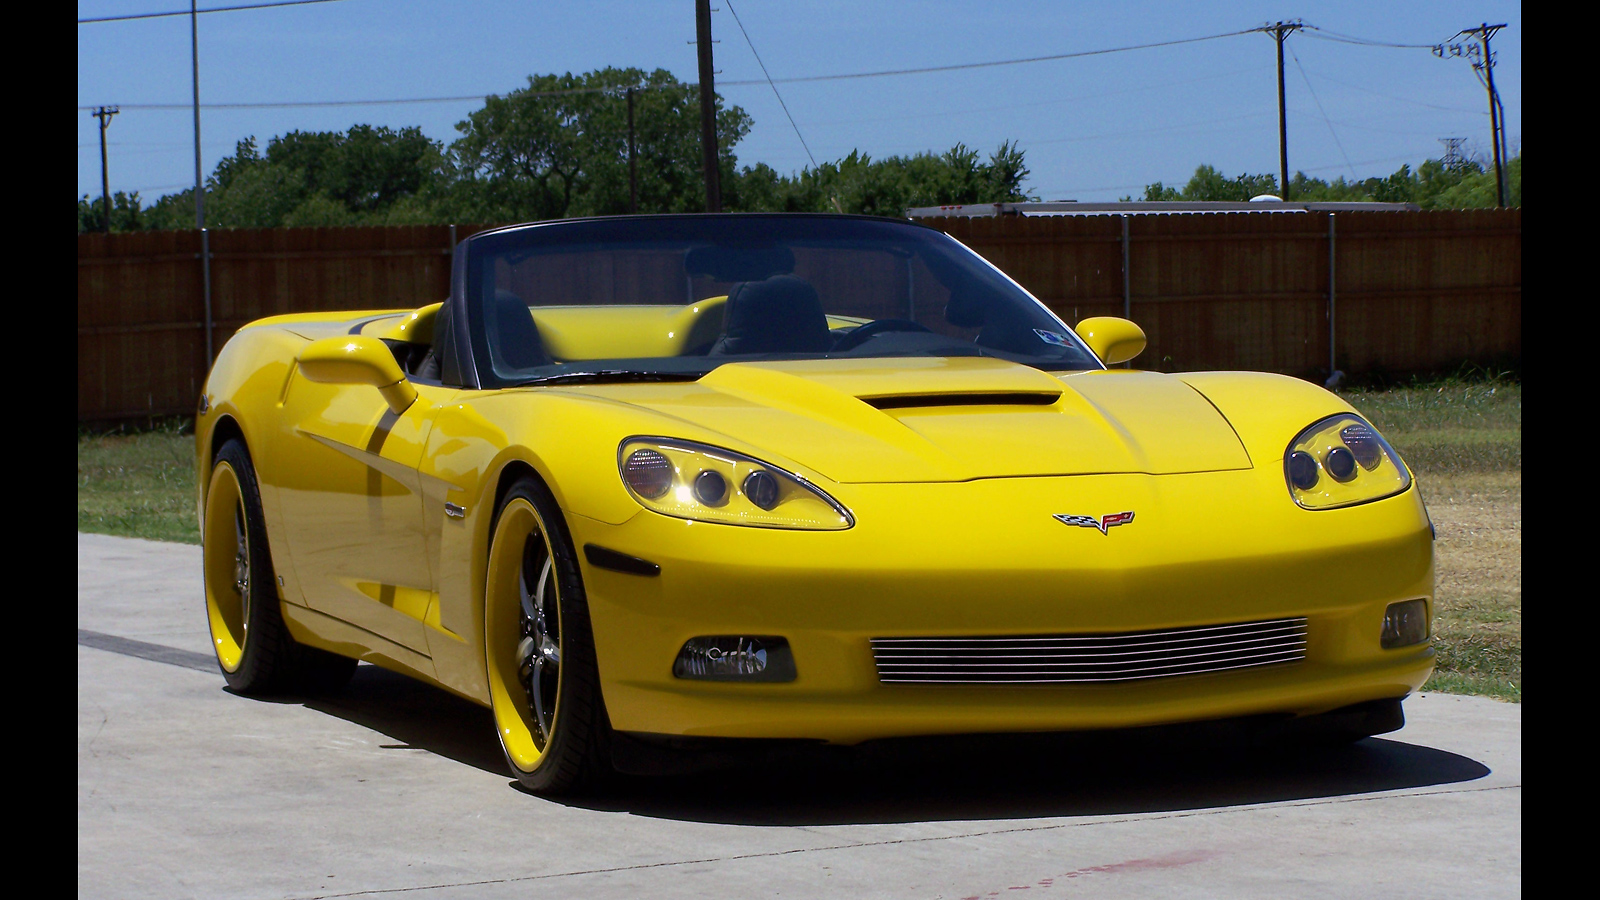 2007 Chevrolet Corvette Information And Photos MOMENTcar